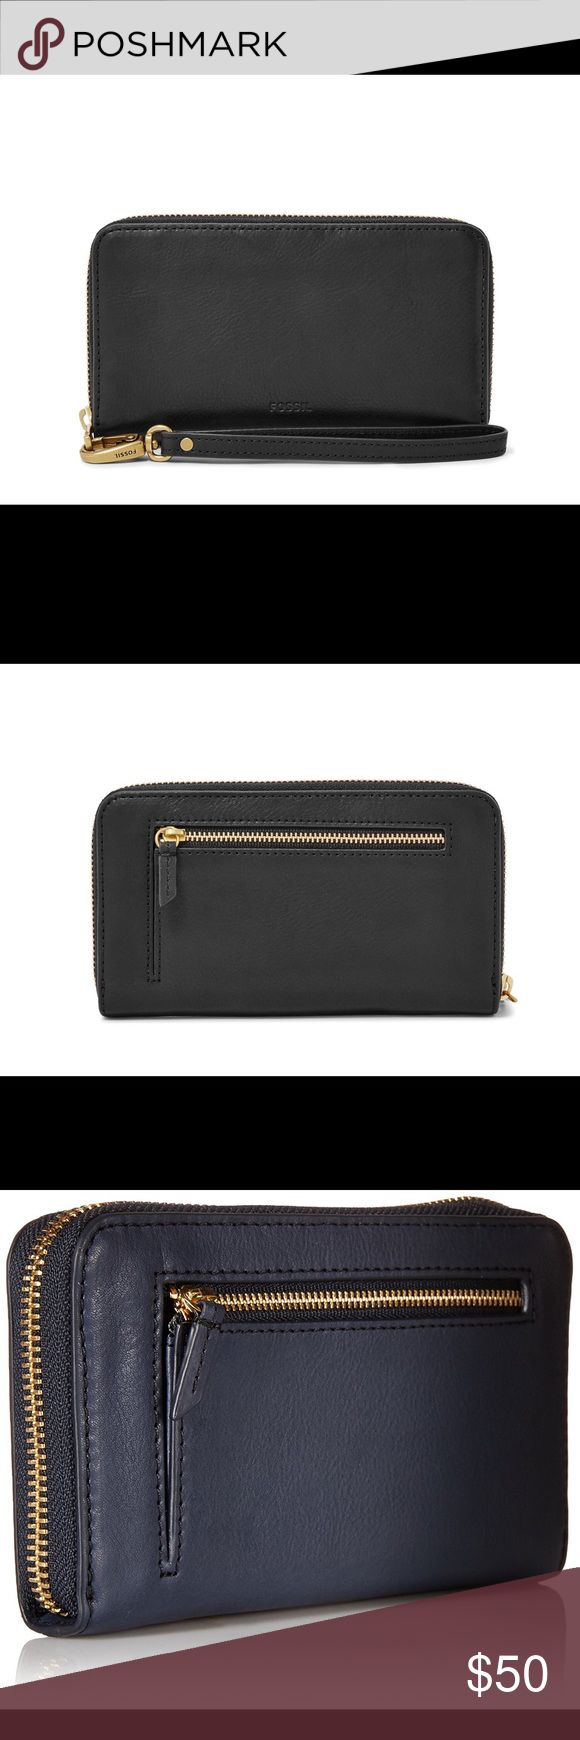 """FOSSIL SMARTPHONE WRISTLET ZIP AROUND WALLET ❤PRICE IS FIRM ❤.                                                            NWT Fossil Emma Smartphone Wristlet. Will hold iPhone 6s, iPhone 7 in cases and other phones the same size or smaller. Color: Black Material: Leather . Zip Around . Interior: Middle zipper compartment, cash slots, 3 RFID protected card slots. Exterior coin pocket . Gold tone hardware details . Measurements: 7"""" L 4""""H. Retail: $75. Fossil Bags Clutches & Wristlets"""